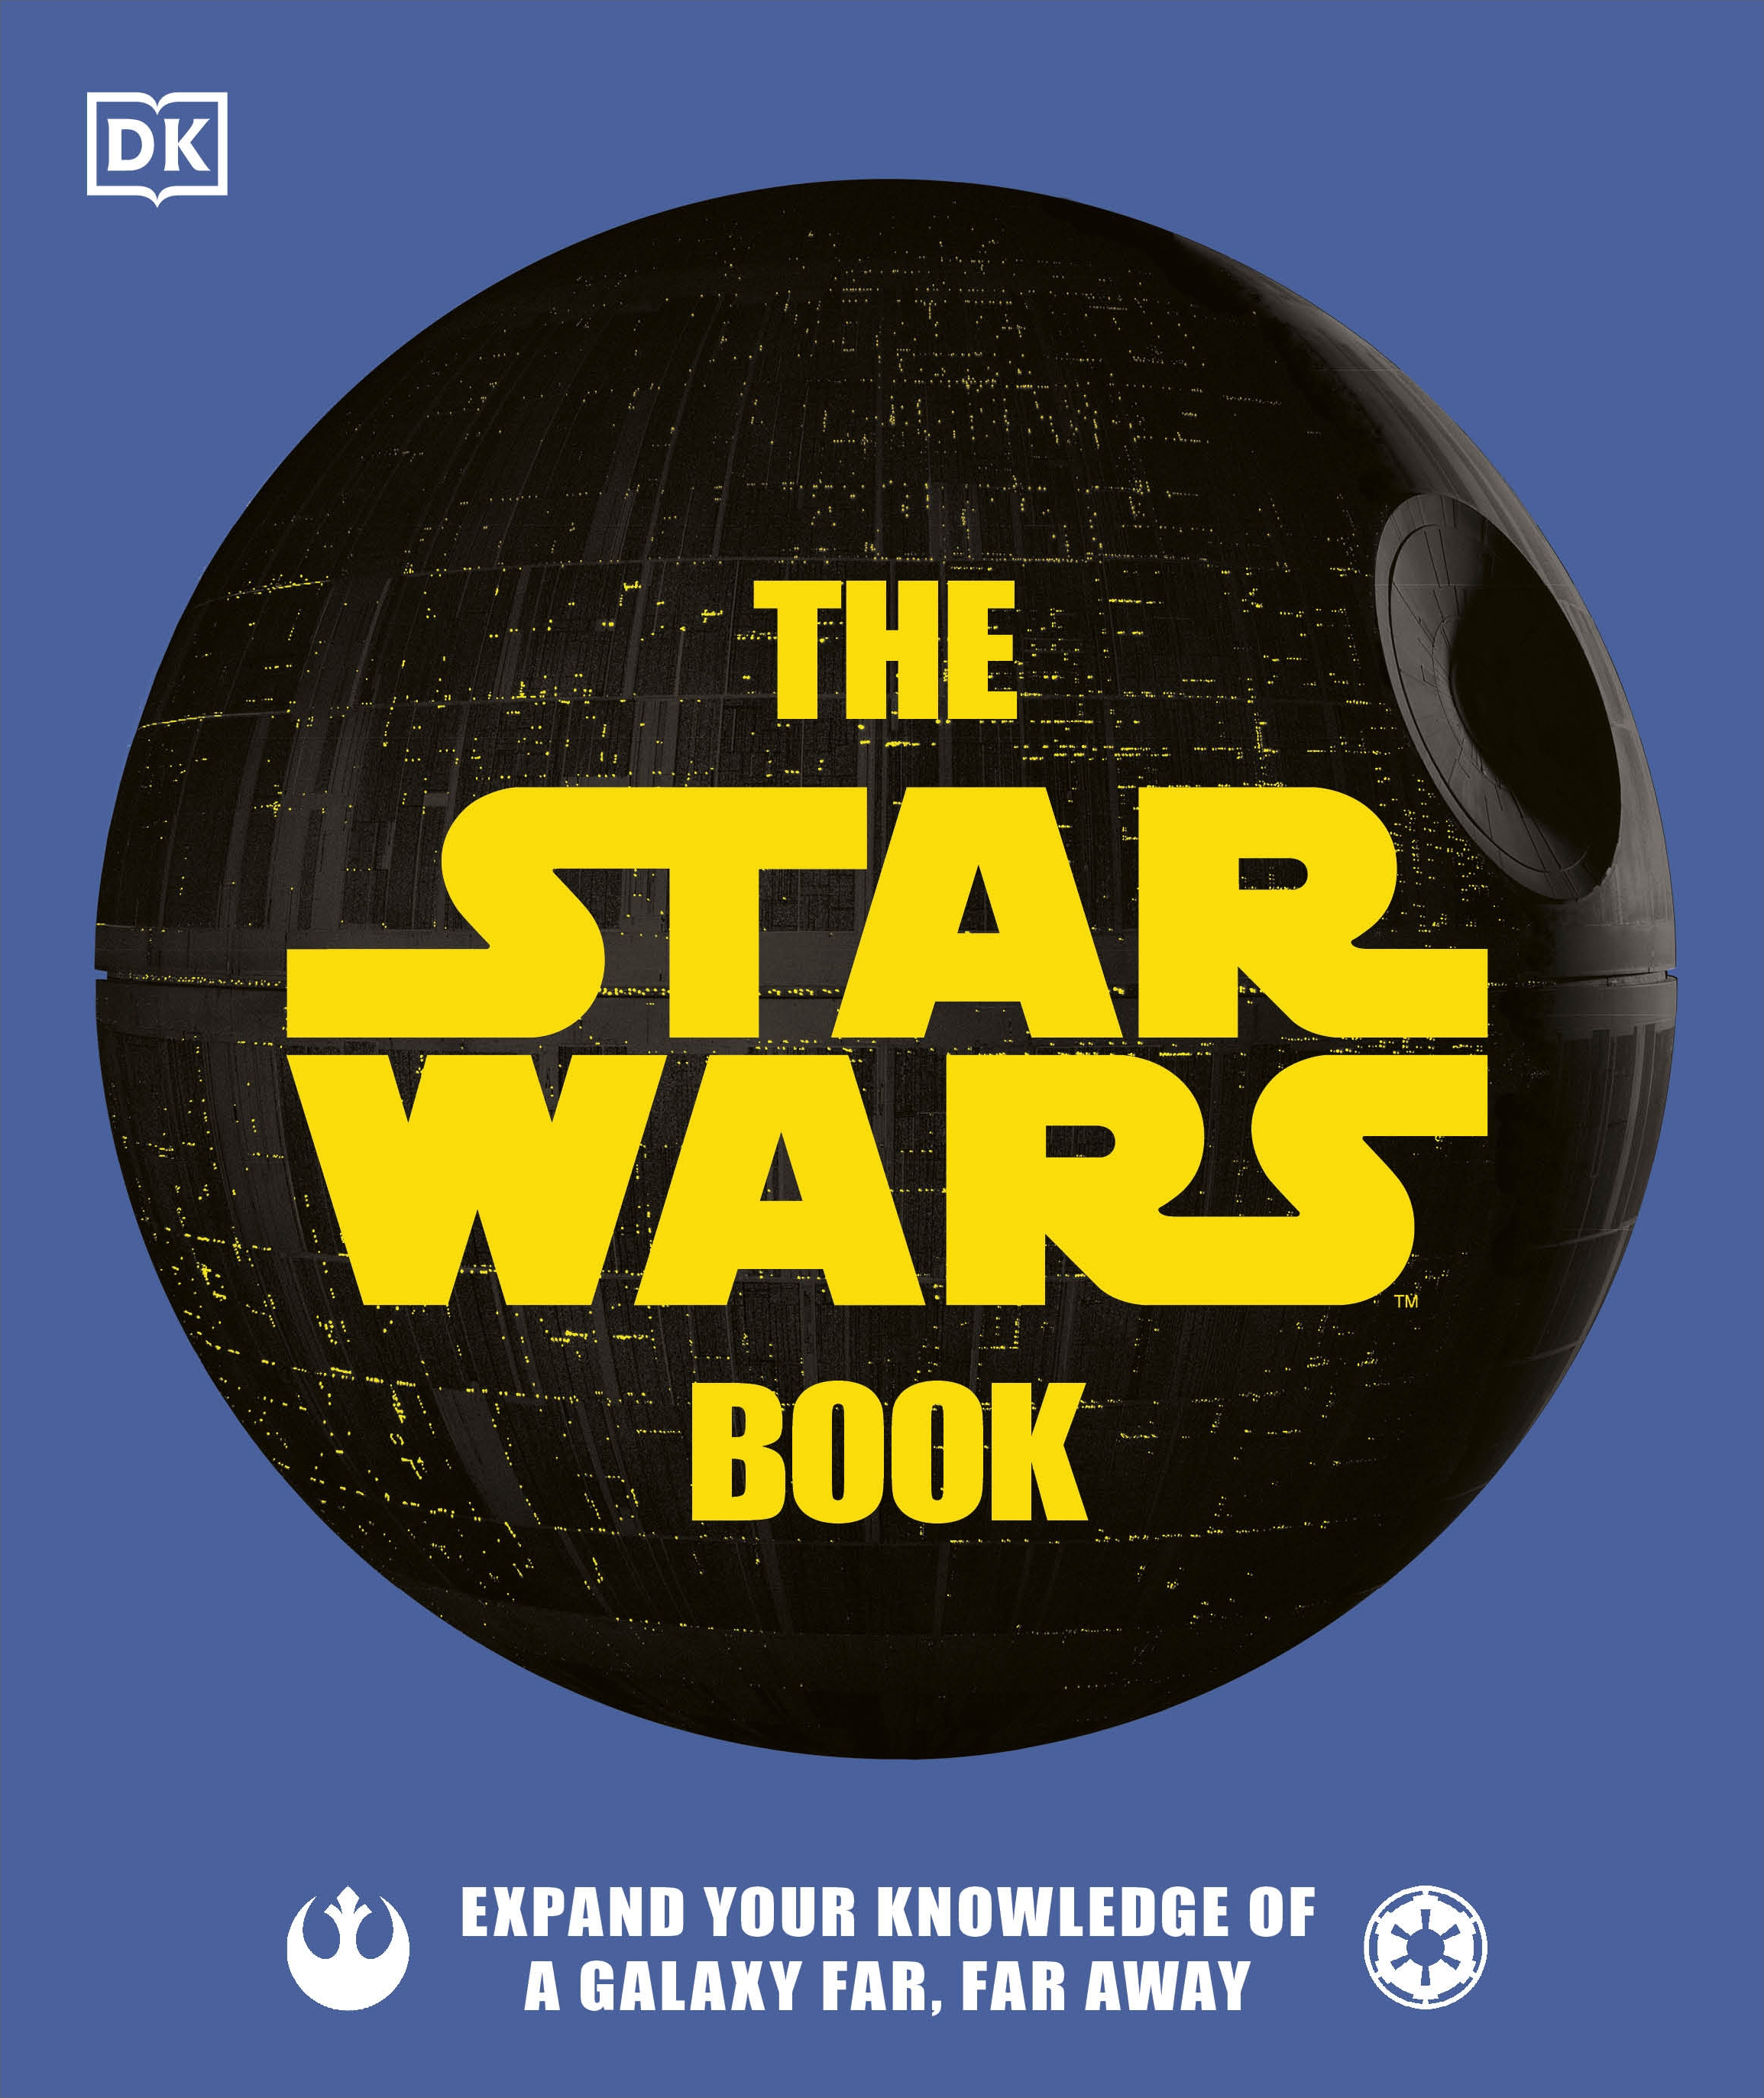 The Star Wars Book: Expand your knowledge of a galaxy far, far away